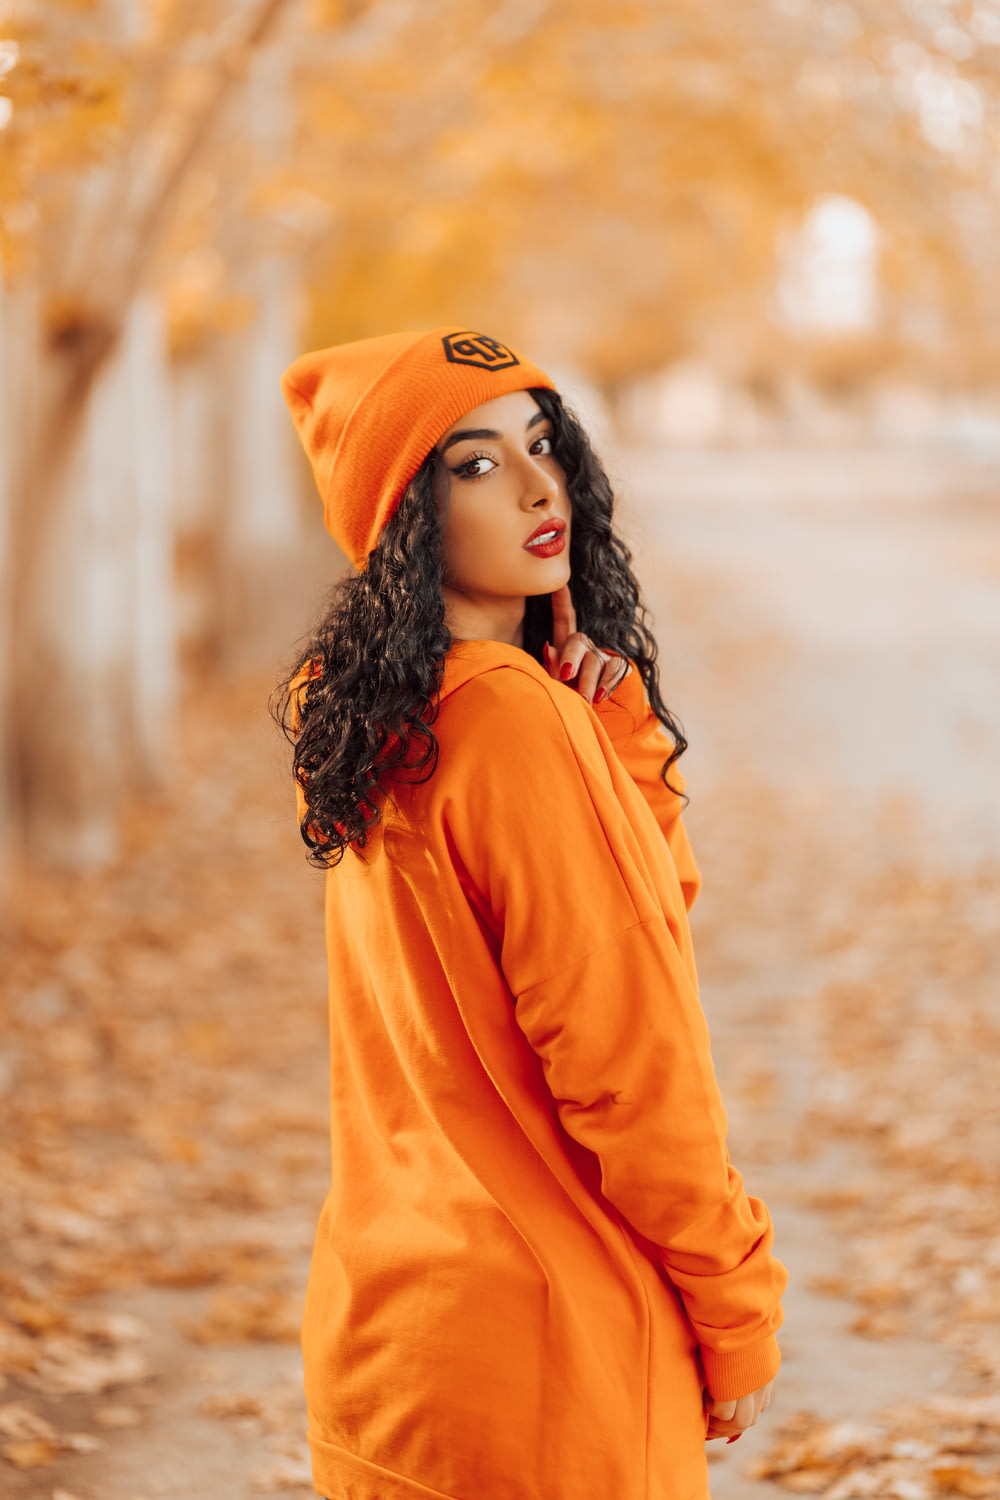 woman in orange hoodie standing on brown soil during daytime